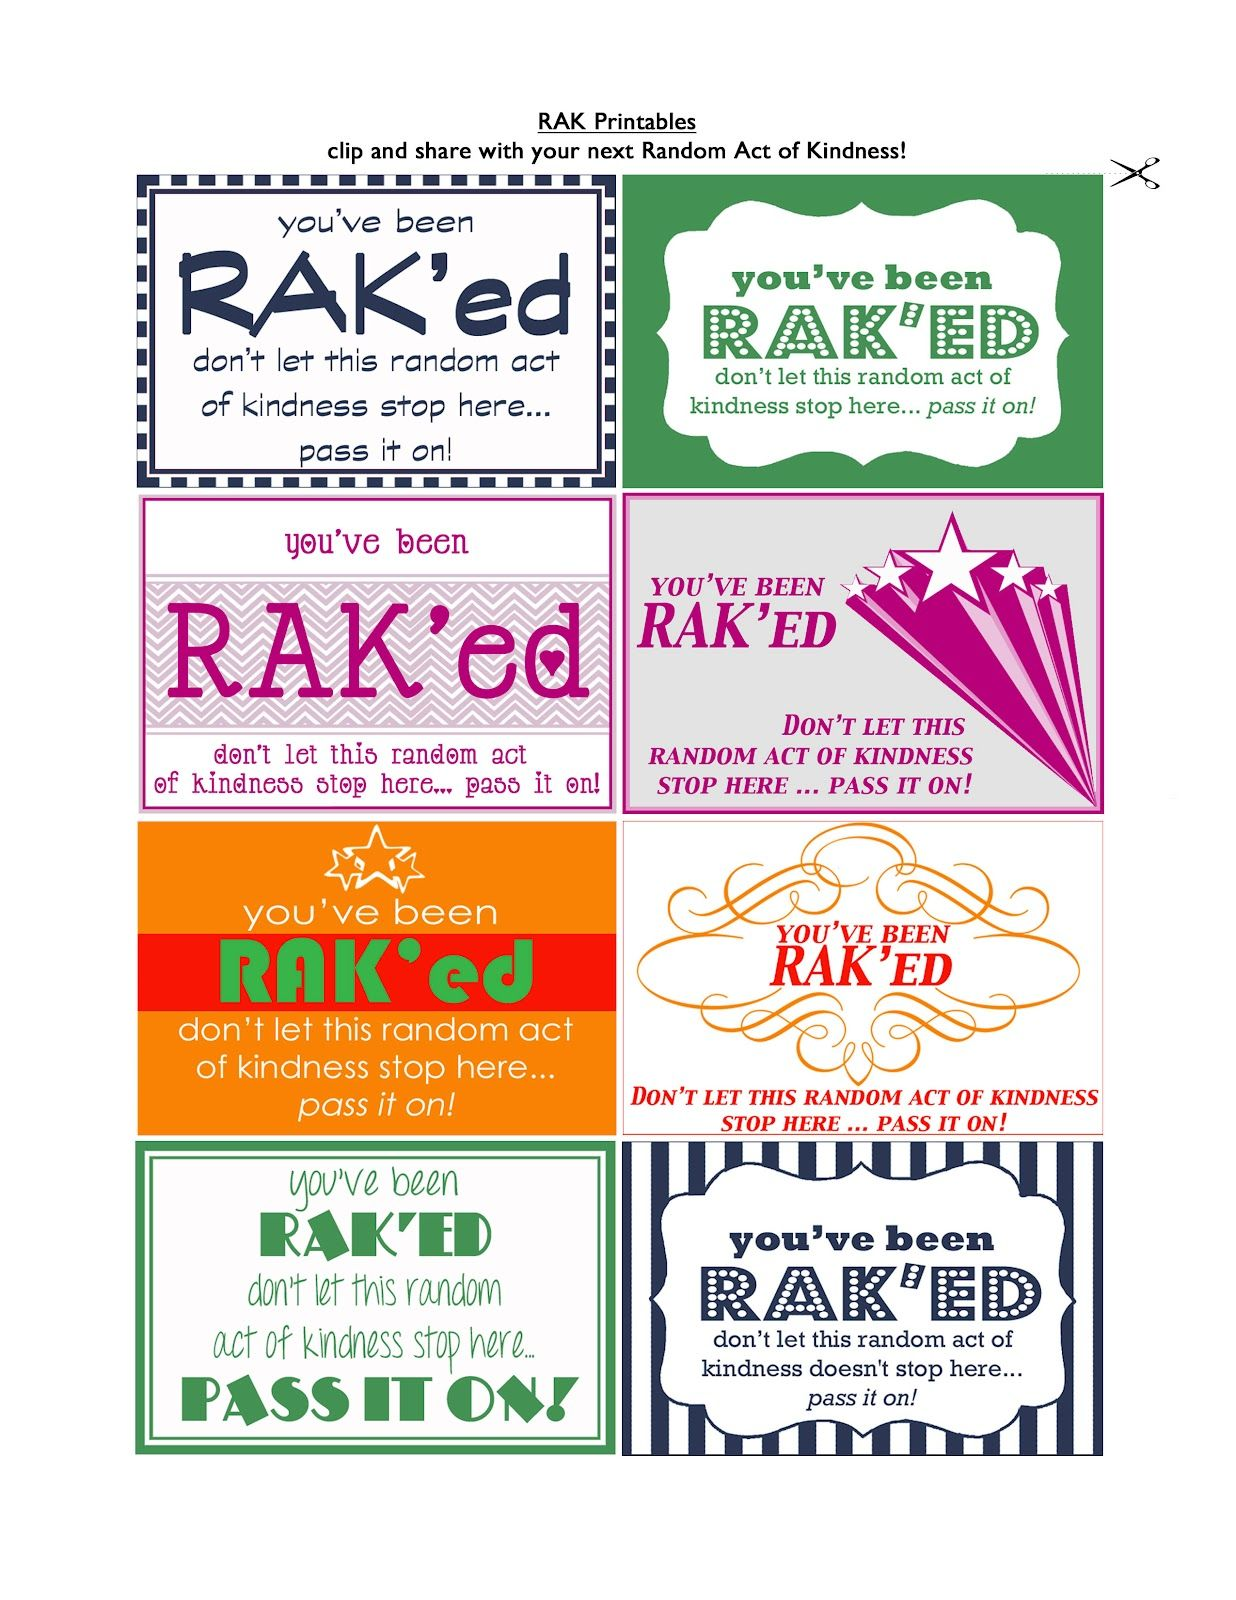 graphic regarding Random Acts of Kindness Cards Printable called I include RAK printables towards proportion nowadays!!! Recall very last 7 days